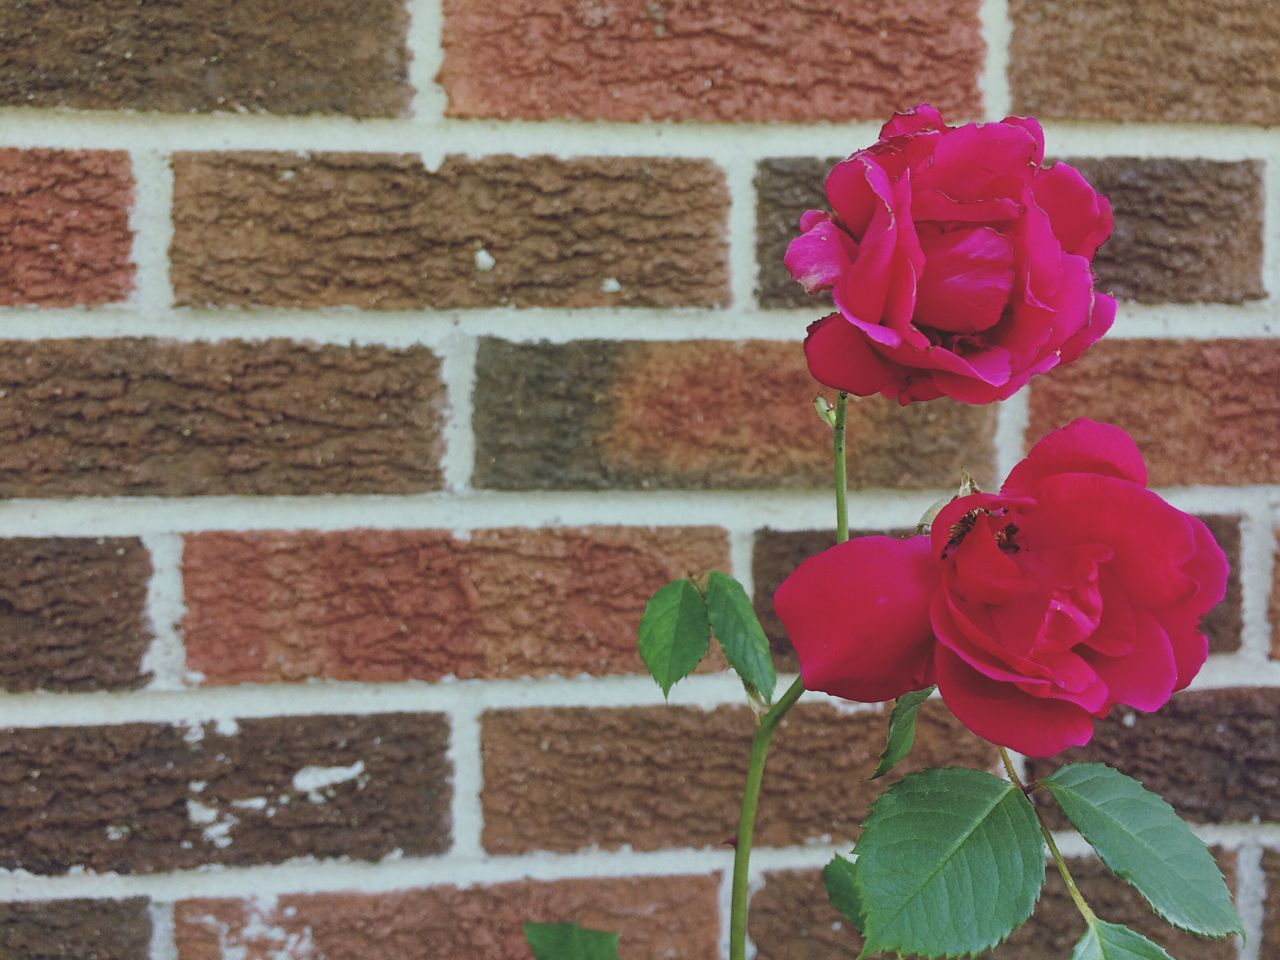 Brick Wall Flower Wall - Building Feature Red Beauty In Nature Growth Nature Outdoors No People Plant Petal Fragility Close-up Day Pink Color Focus On Foreground Freshness Leaf Blooming Architecture